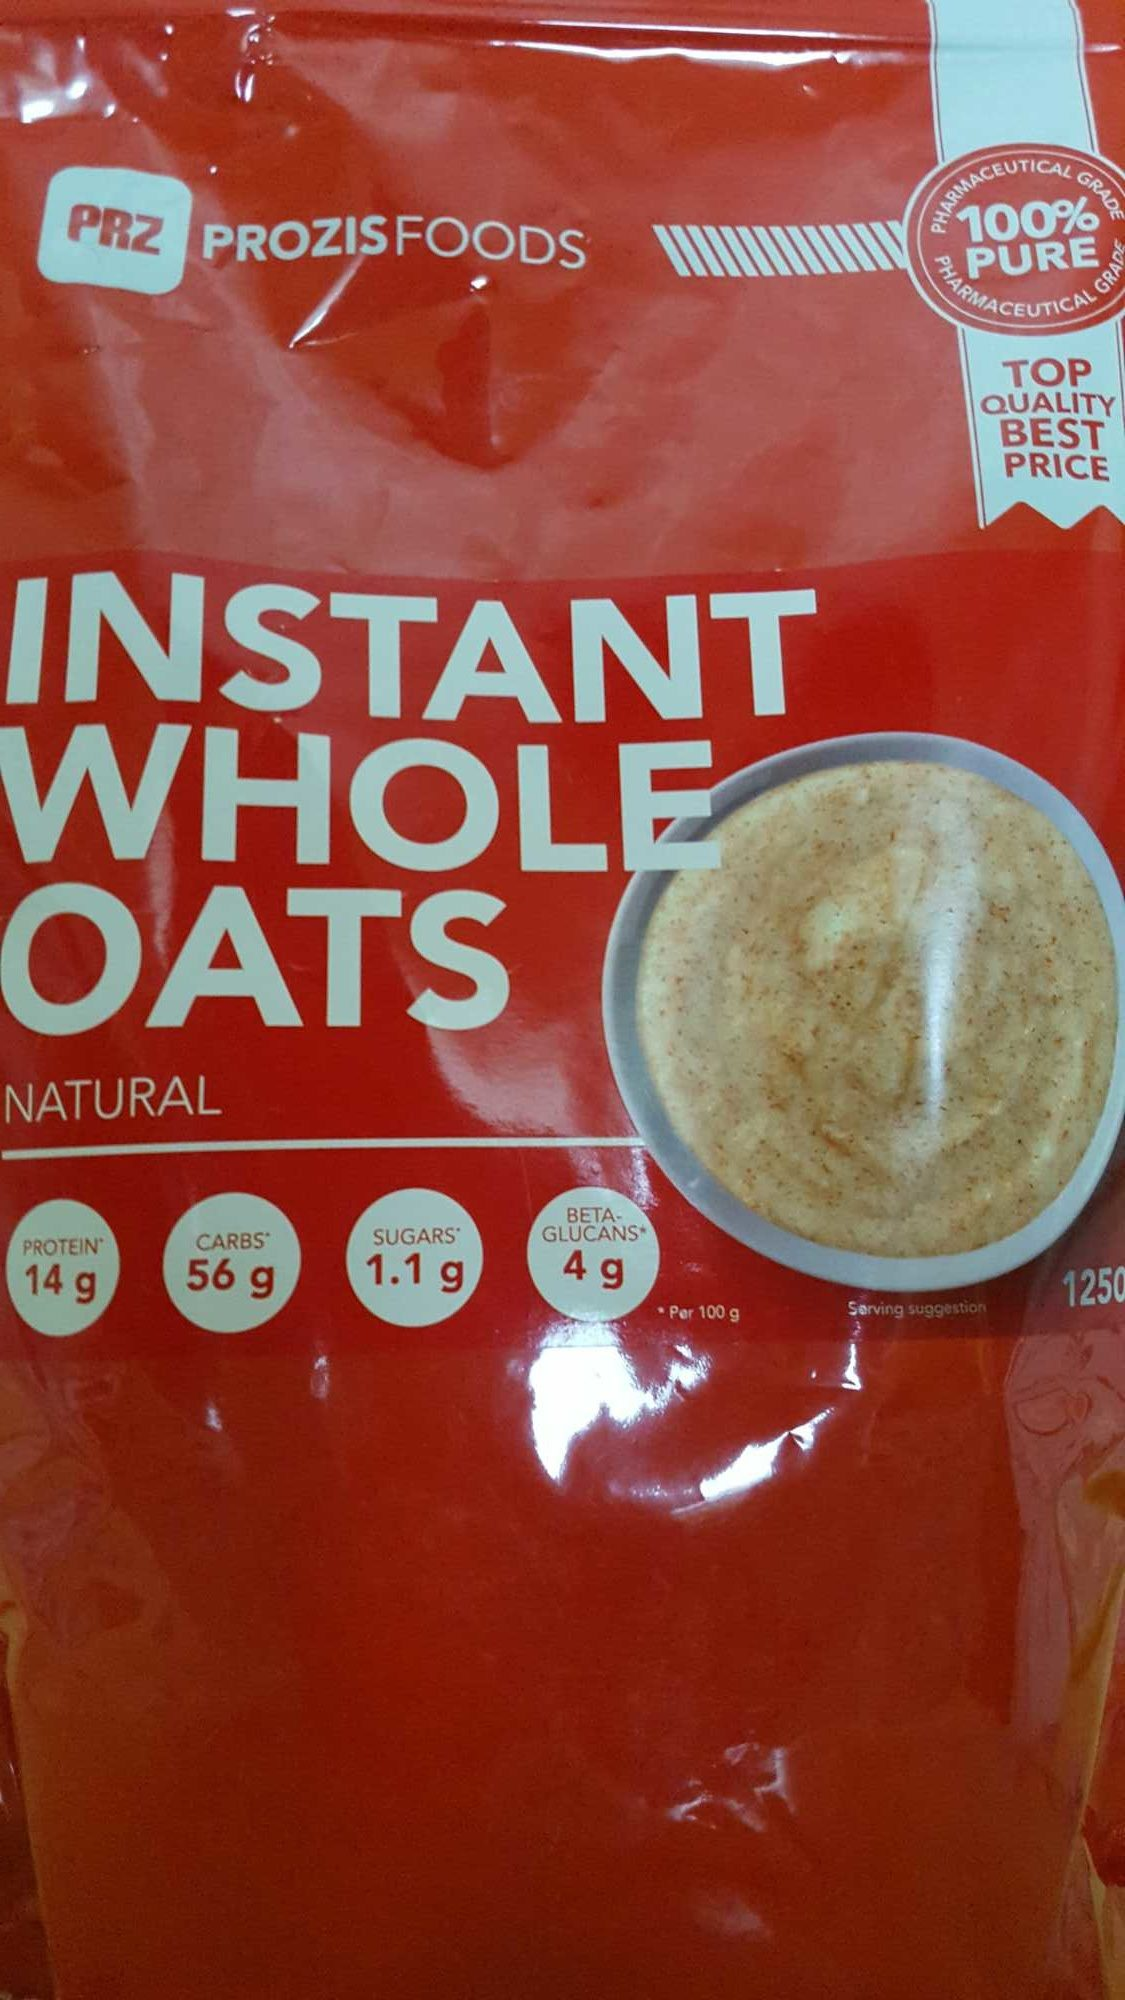 Instant whole oats natural - Product - fr